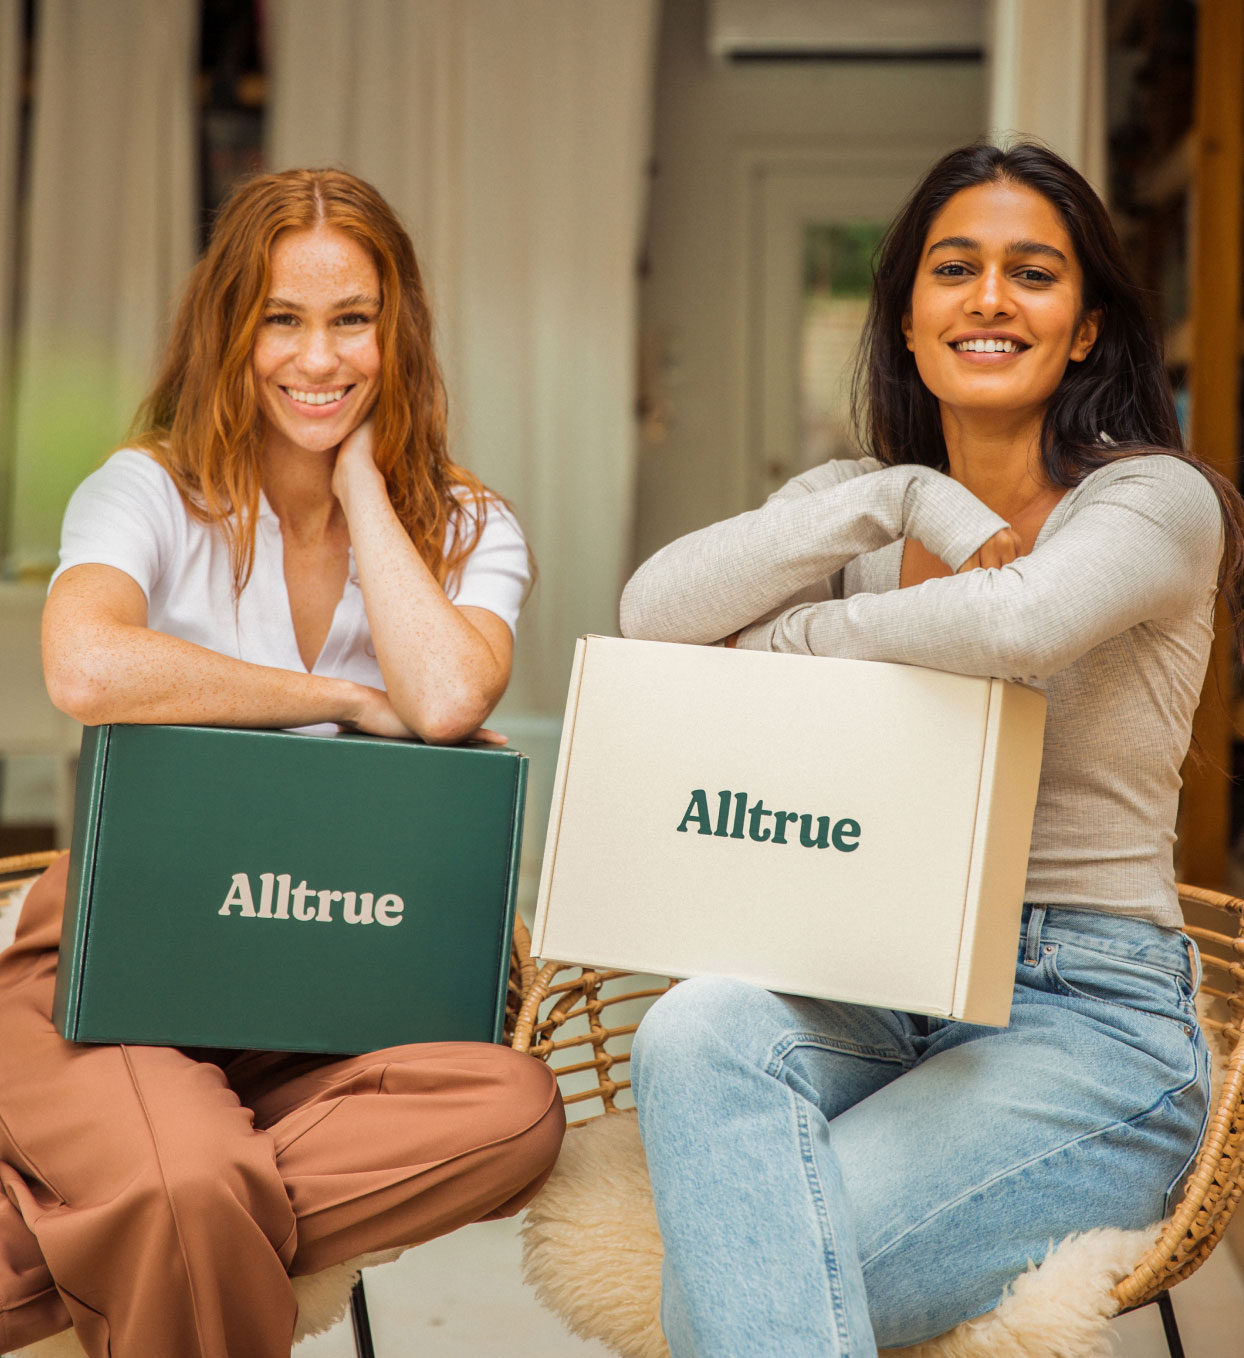 Two women smiling and looking at the camera. Both have an Alltrue box on their laps.